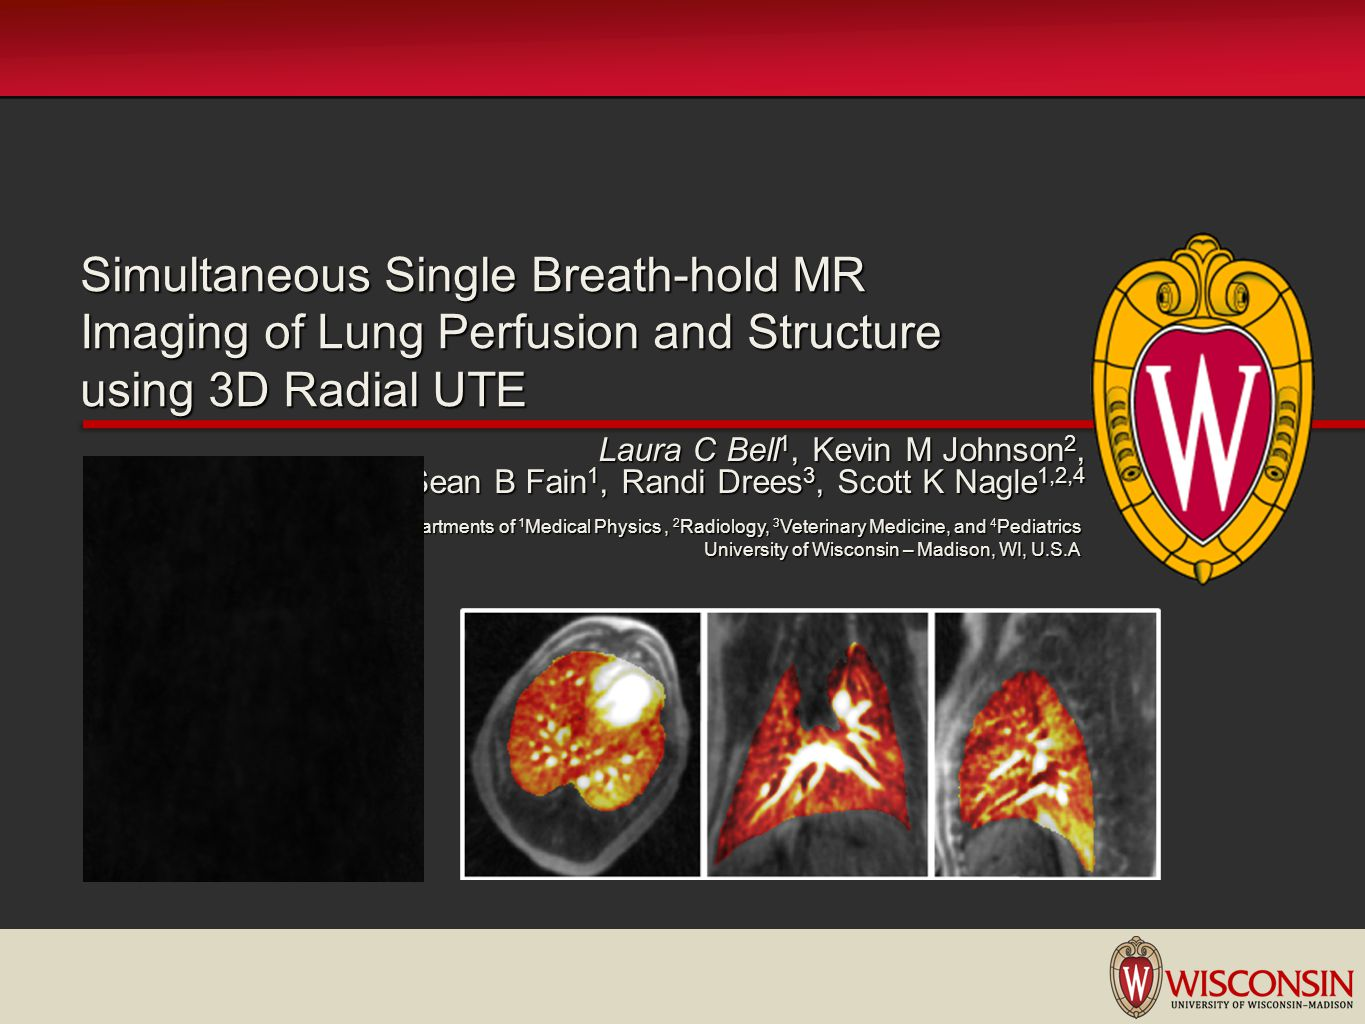 Simultaneous Single Breath-hold MR Imaging of Lung Perfusion and Structure using 3D Radial UTE Laura C Bell 1, Kevin M Johnson 2, Sean B Fain 1, Randi